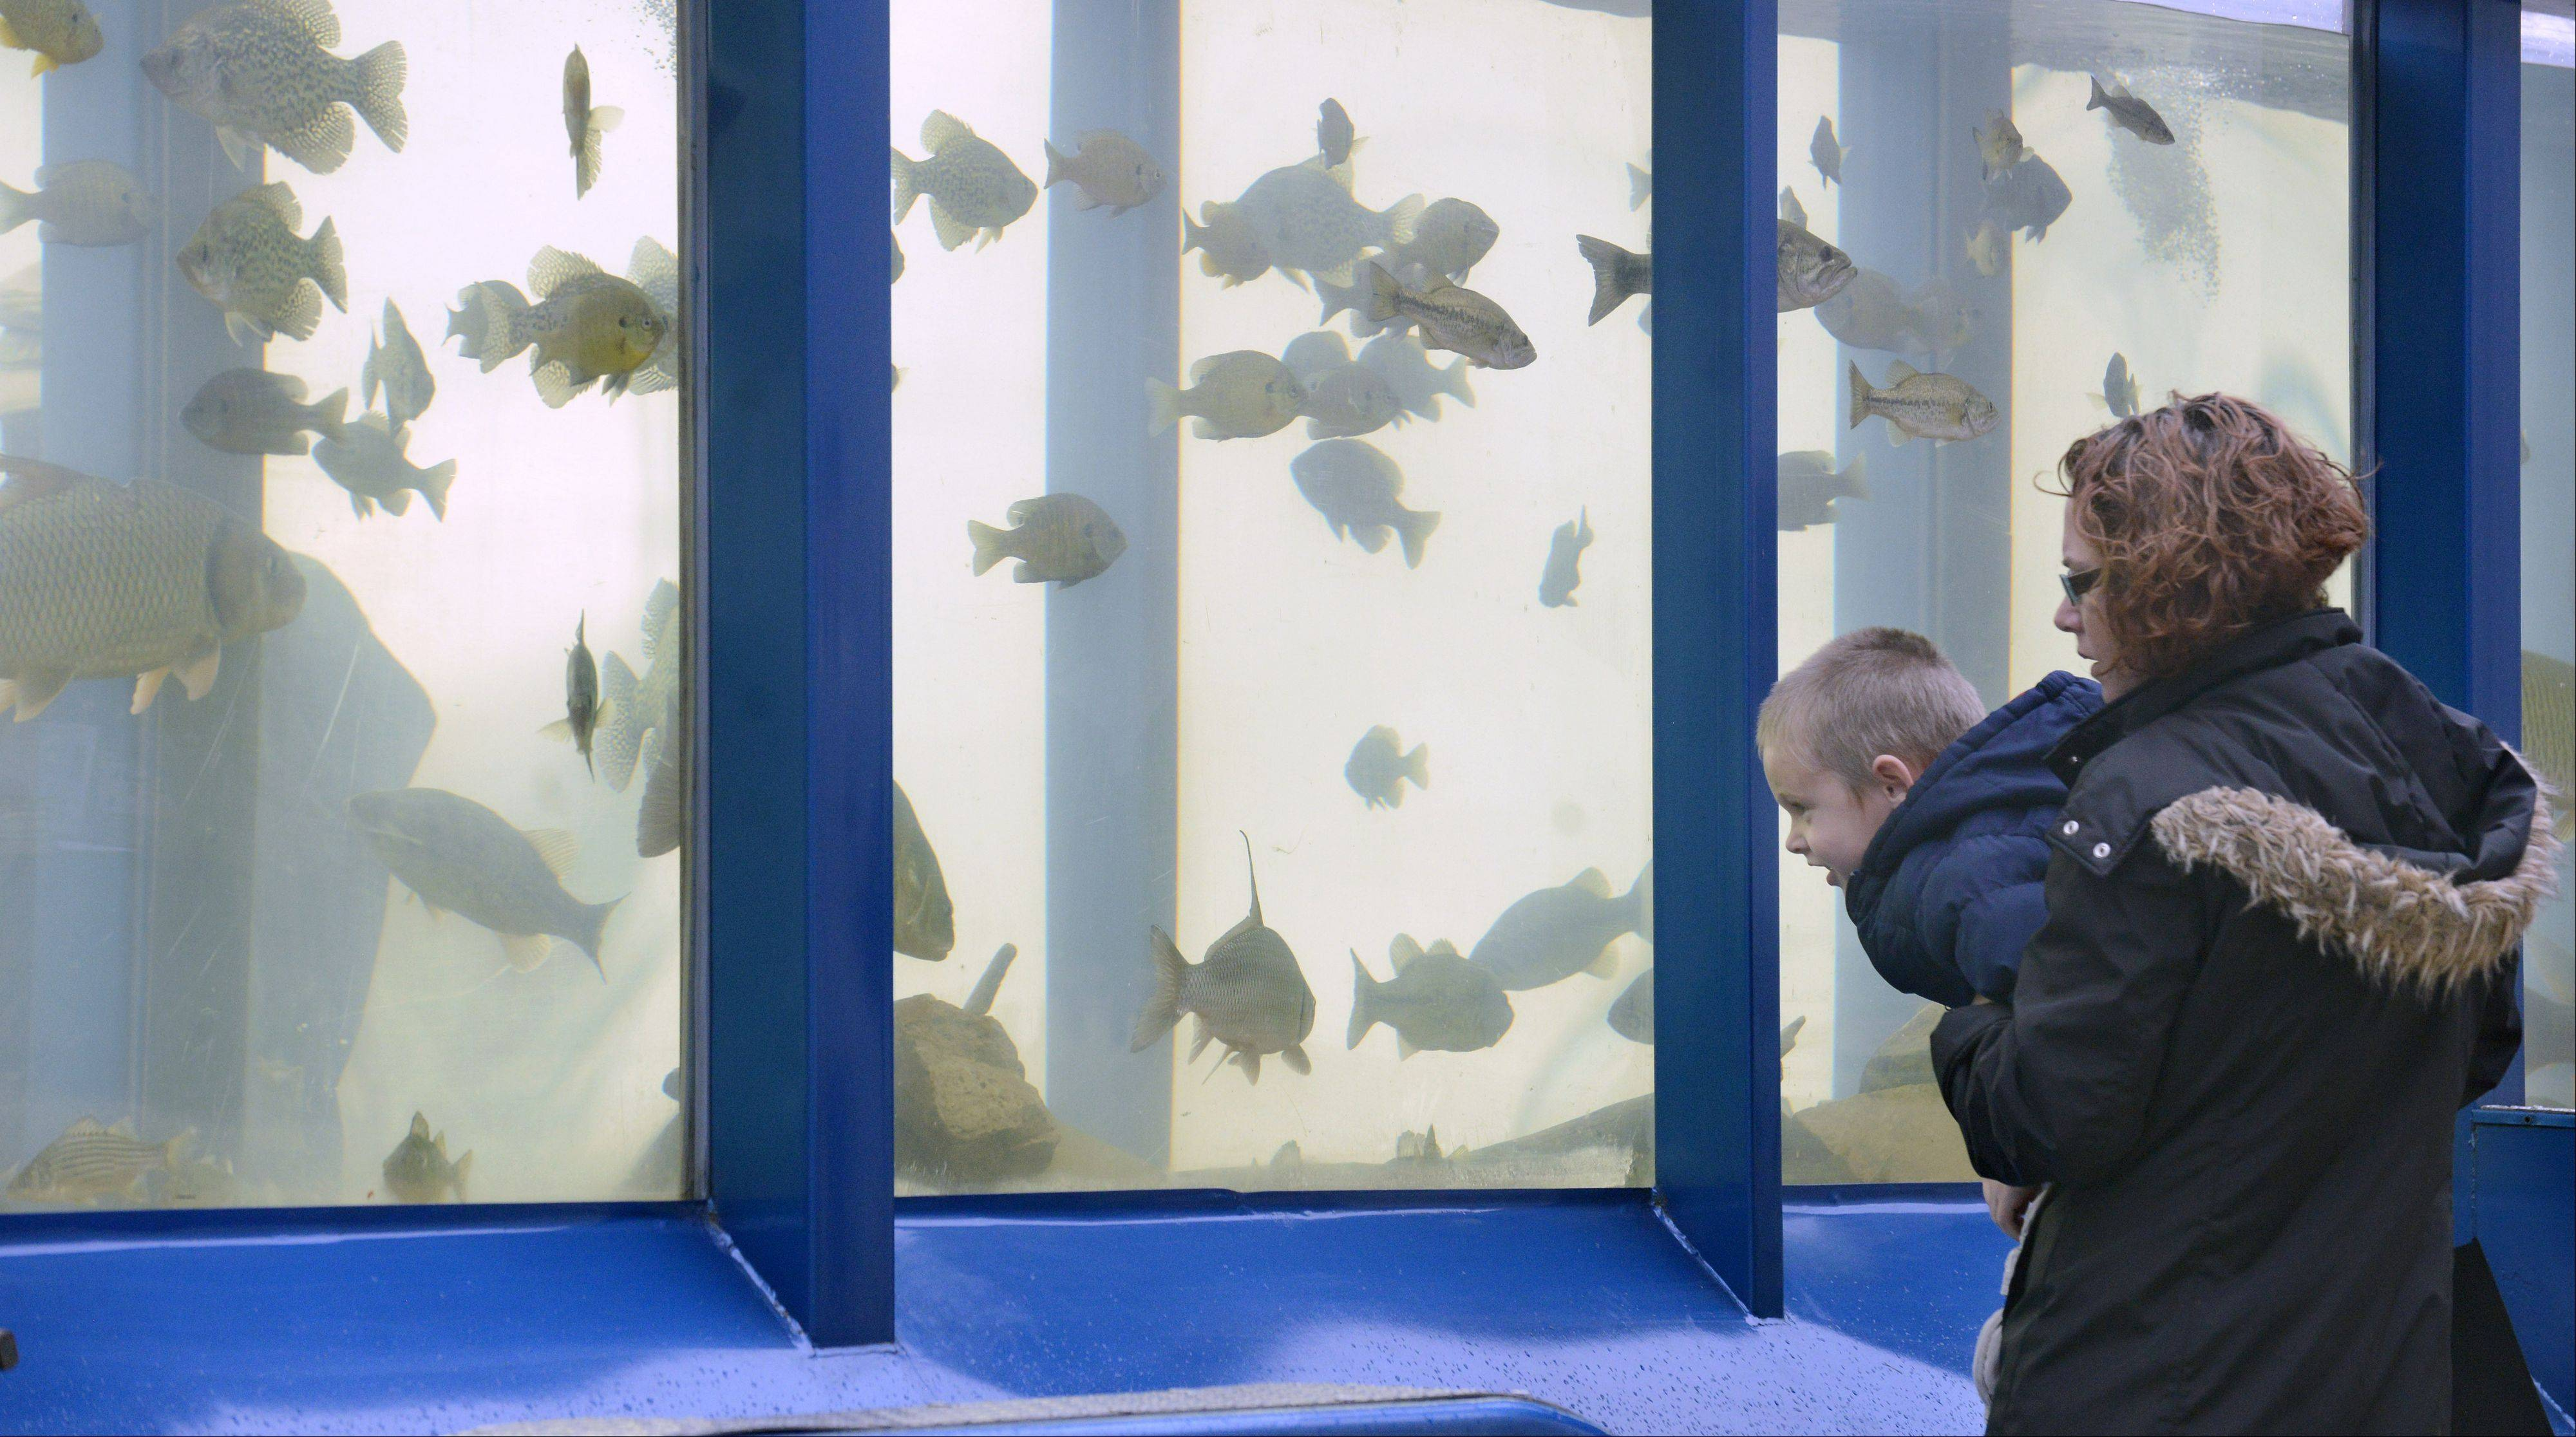 Shannon Hanson, of Wauconda, gives her son, Grady, 4, a boost to look at fish from the Fox River on display in a 2,500 gallon tank at the Friends of the Fox River's booth at the sixth annual Green Living Expo at McHenry County College in Crystal Lake on Saturday. Hanson came with her mother, Ellen Hanson of Crystal Lake, to the event for the first time. They thought Grady would enjoy seeing the massive tank.